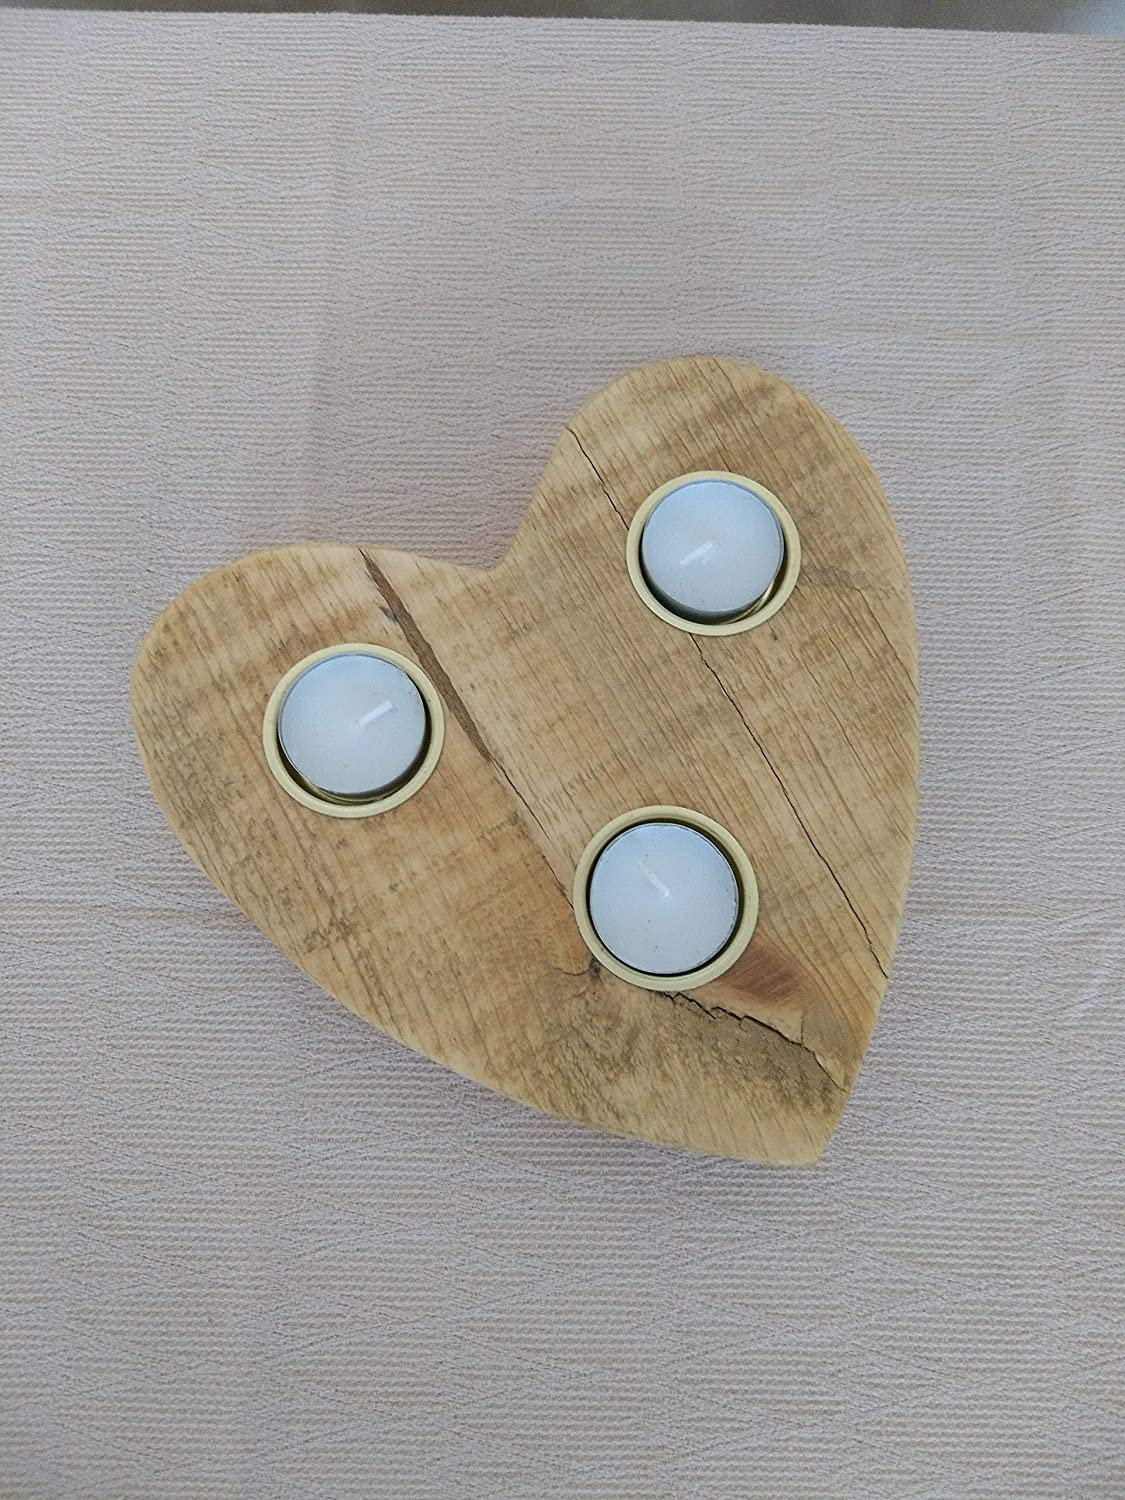 5th Anniversary Gift Valentines Day Gift  Wooden Heart Tealight Candle Holder